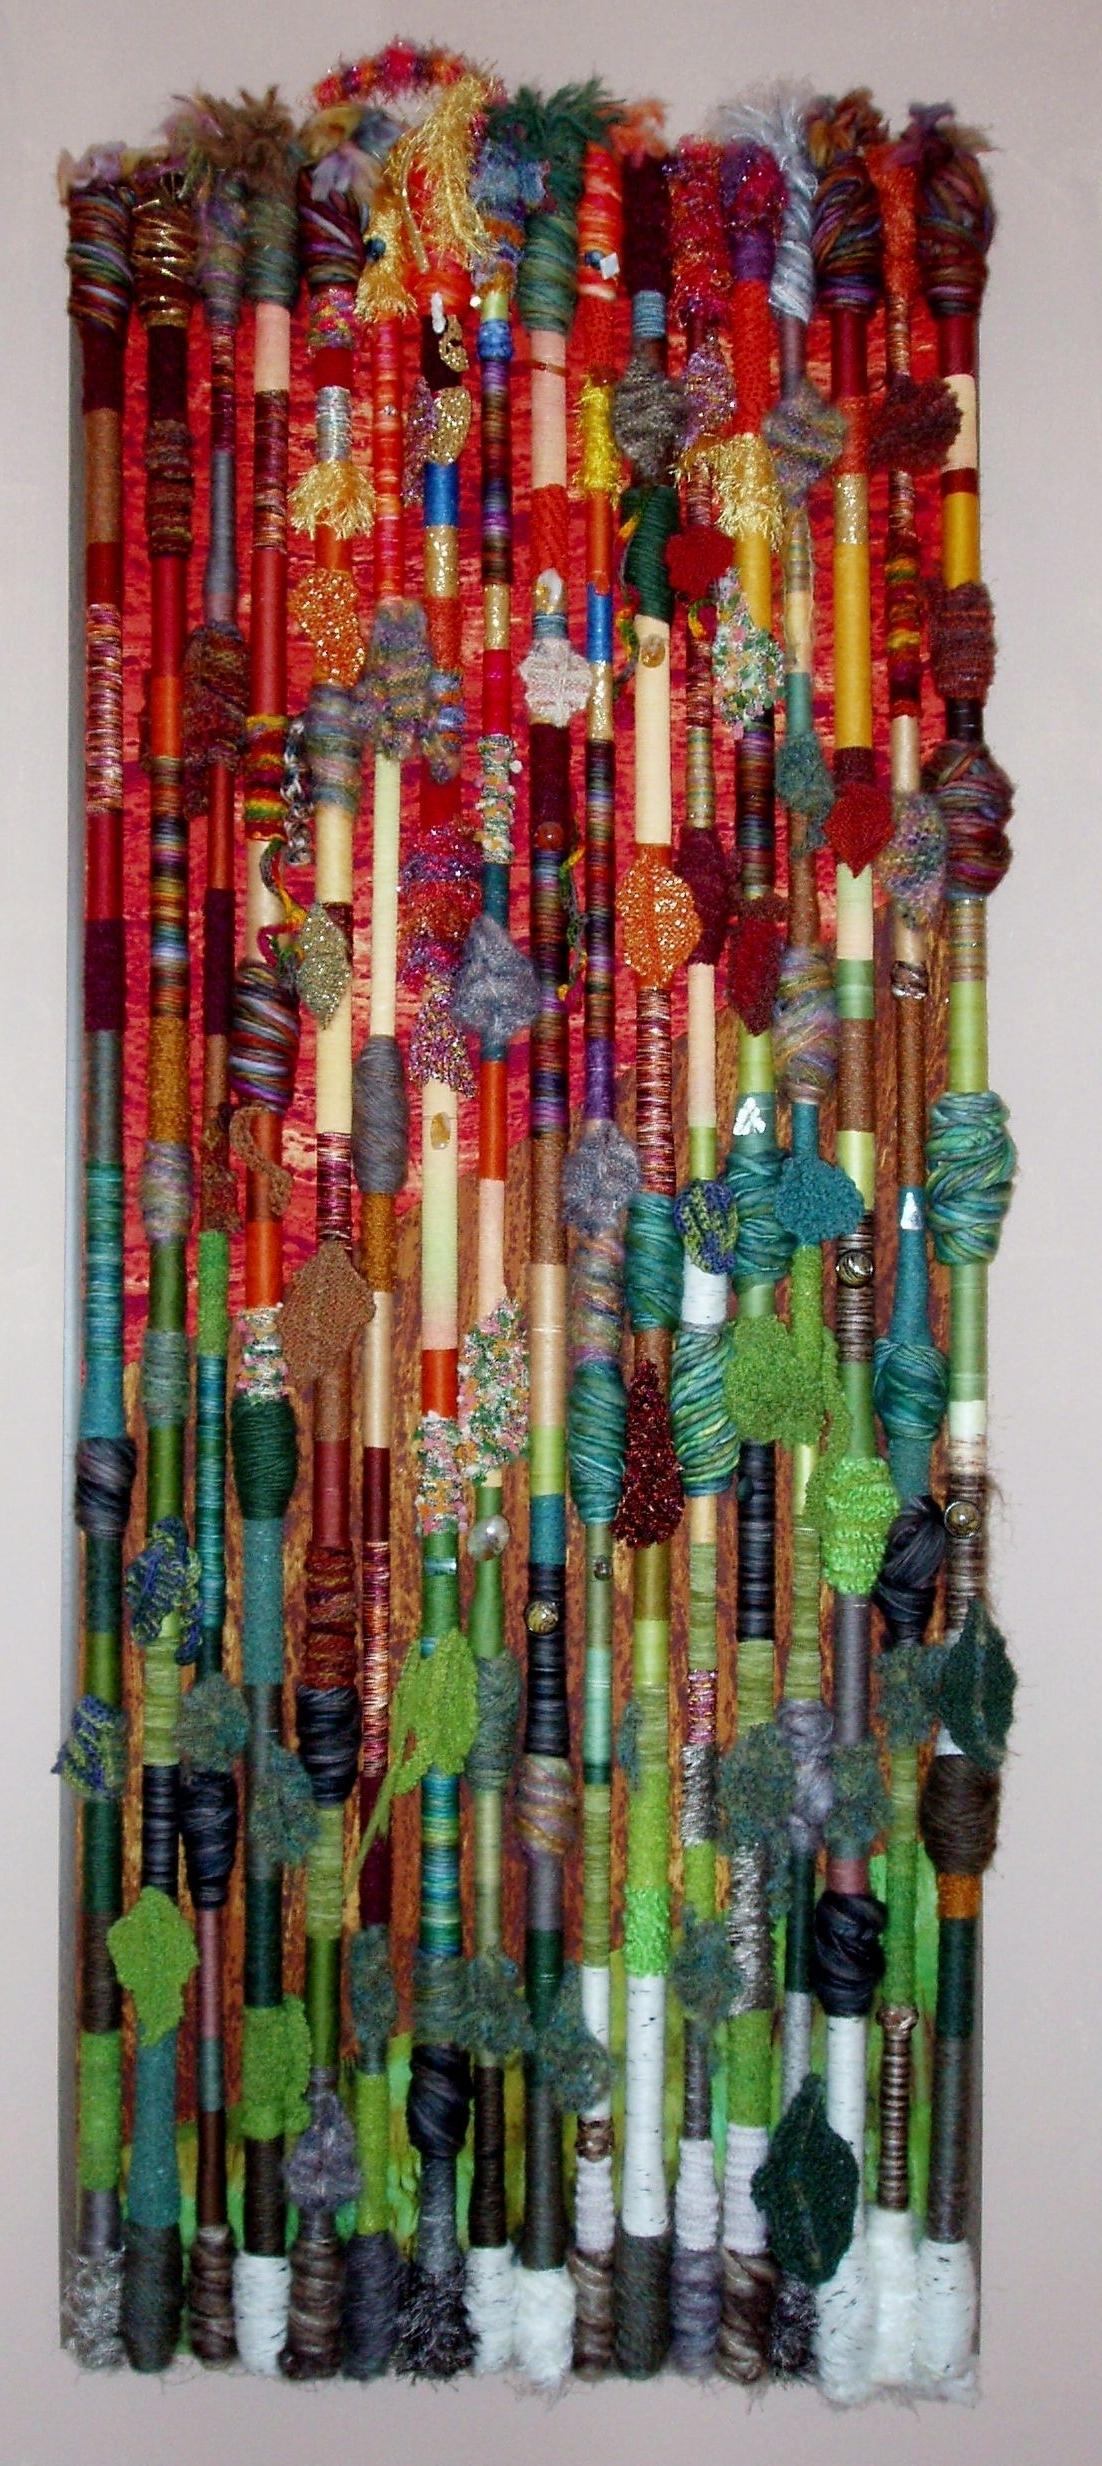 Abstract Textile Wall Art Inside Most Recently Released Fiber Art Wall Hanging – Fall In The Northland (View 3 of 15)